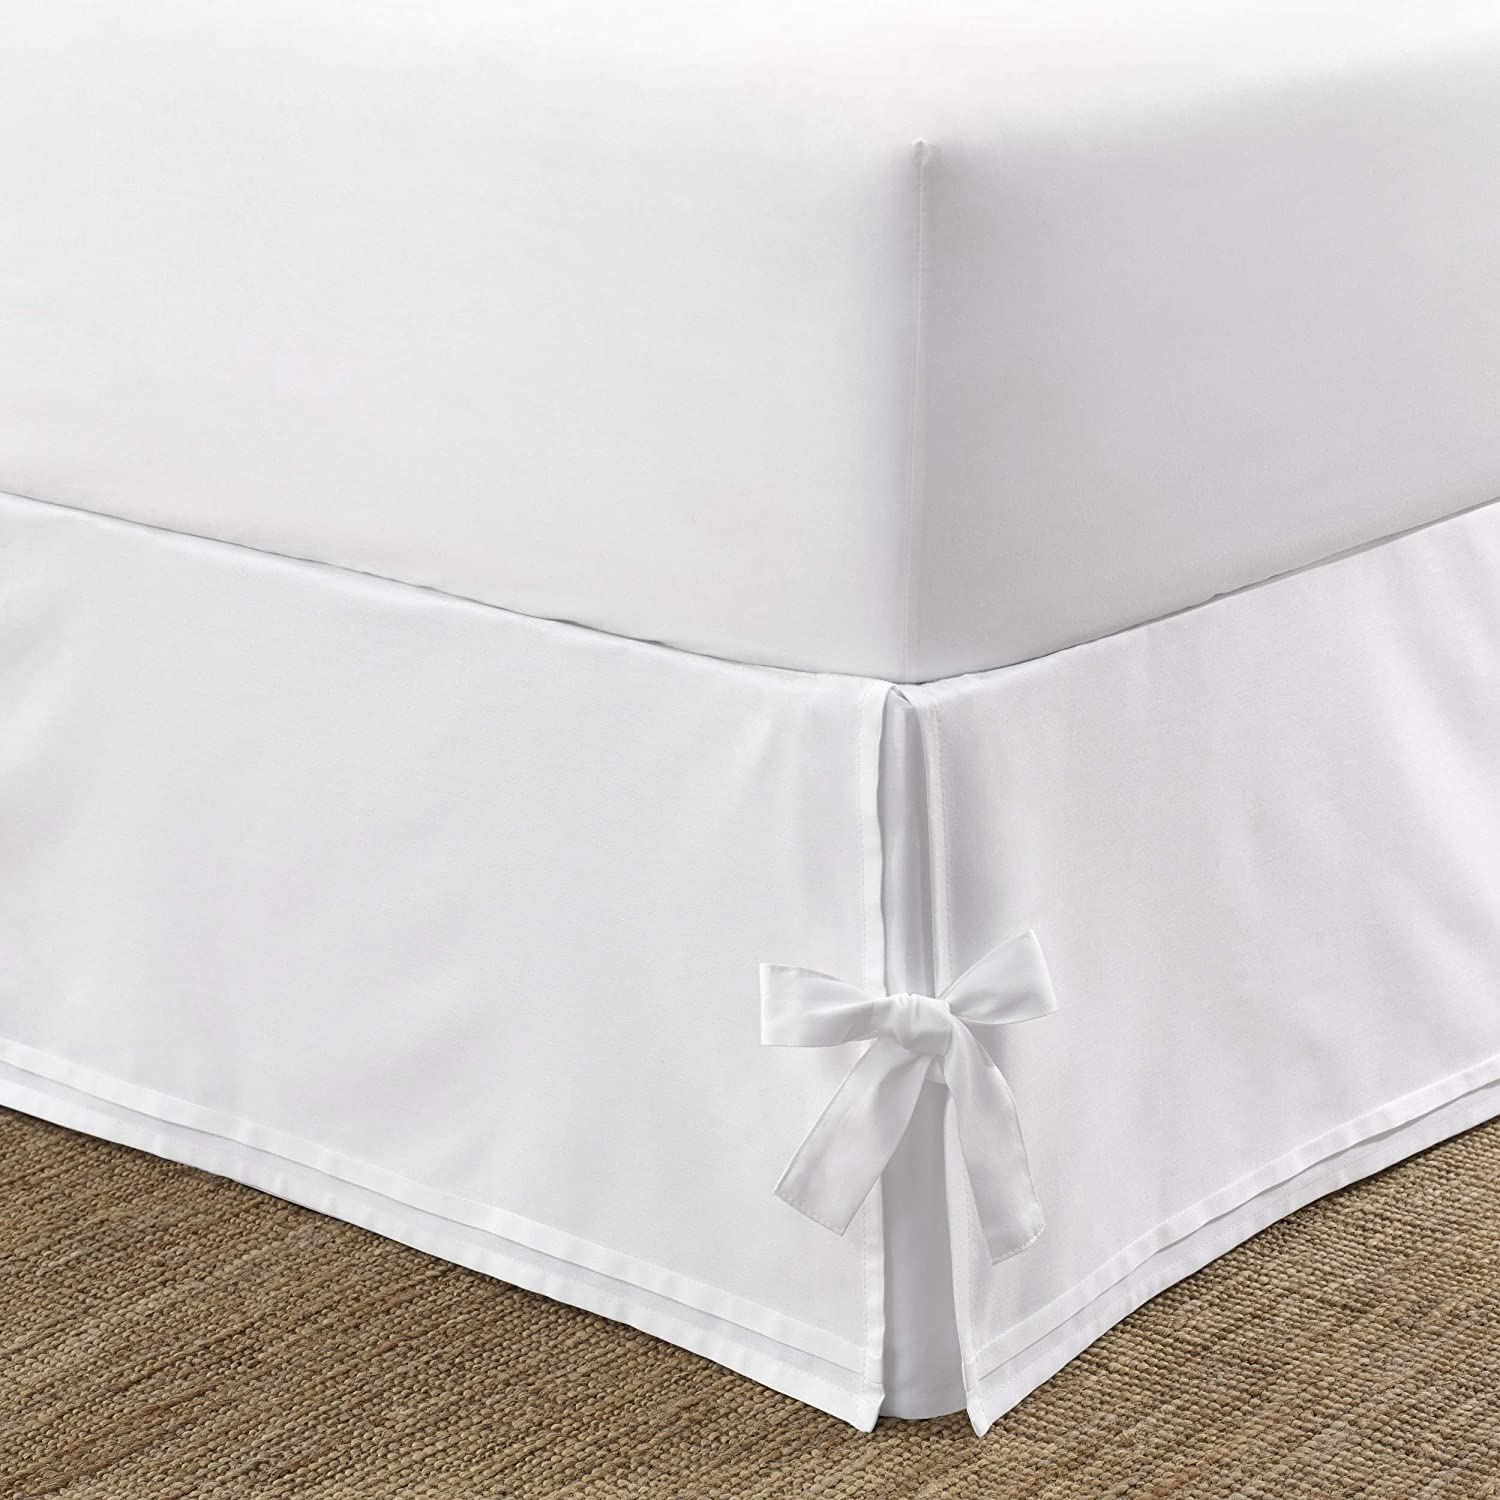 Laura Ashley Home | Corner Ties Collection | Luxury Premium Hotel Quality Bedskirt, Easy Fit, Anti Wrinkle & Fade Resistant, Stylish Design for Home Décor, King, White